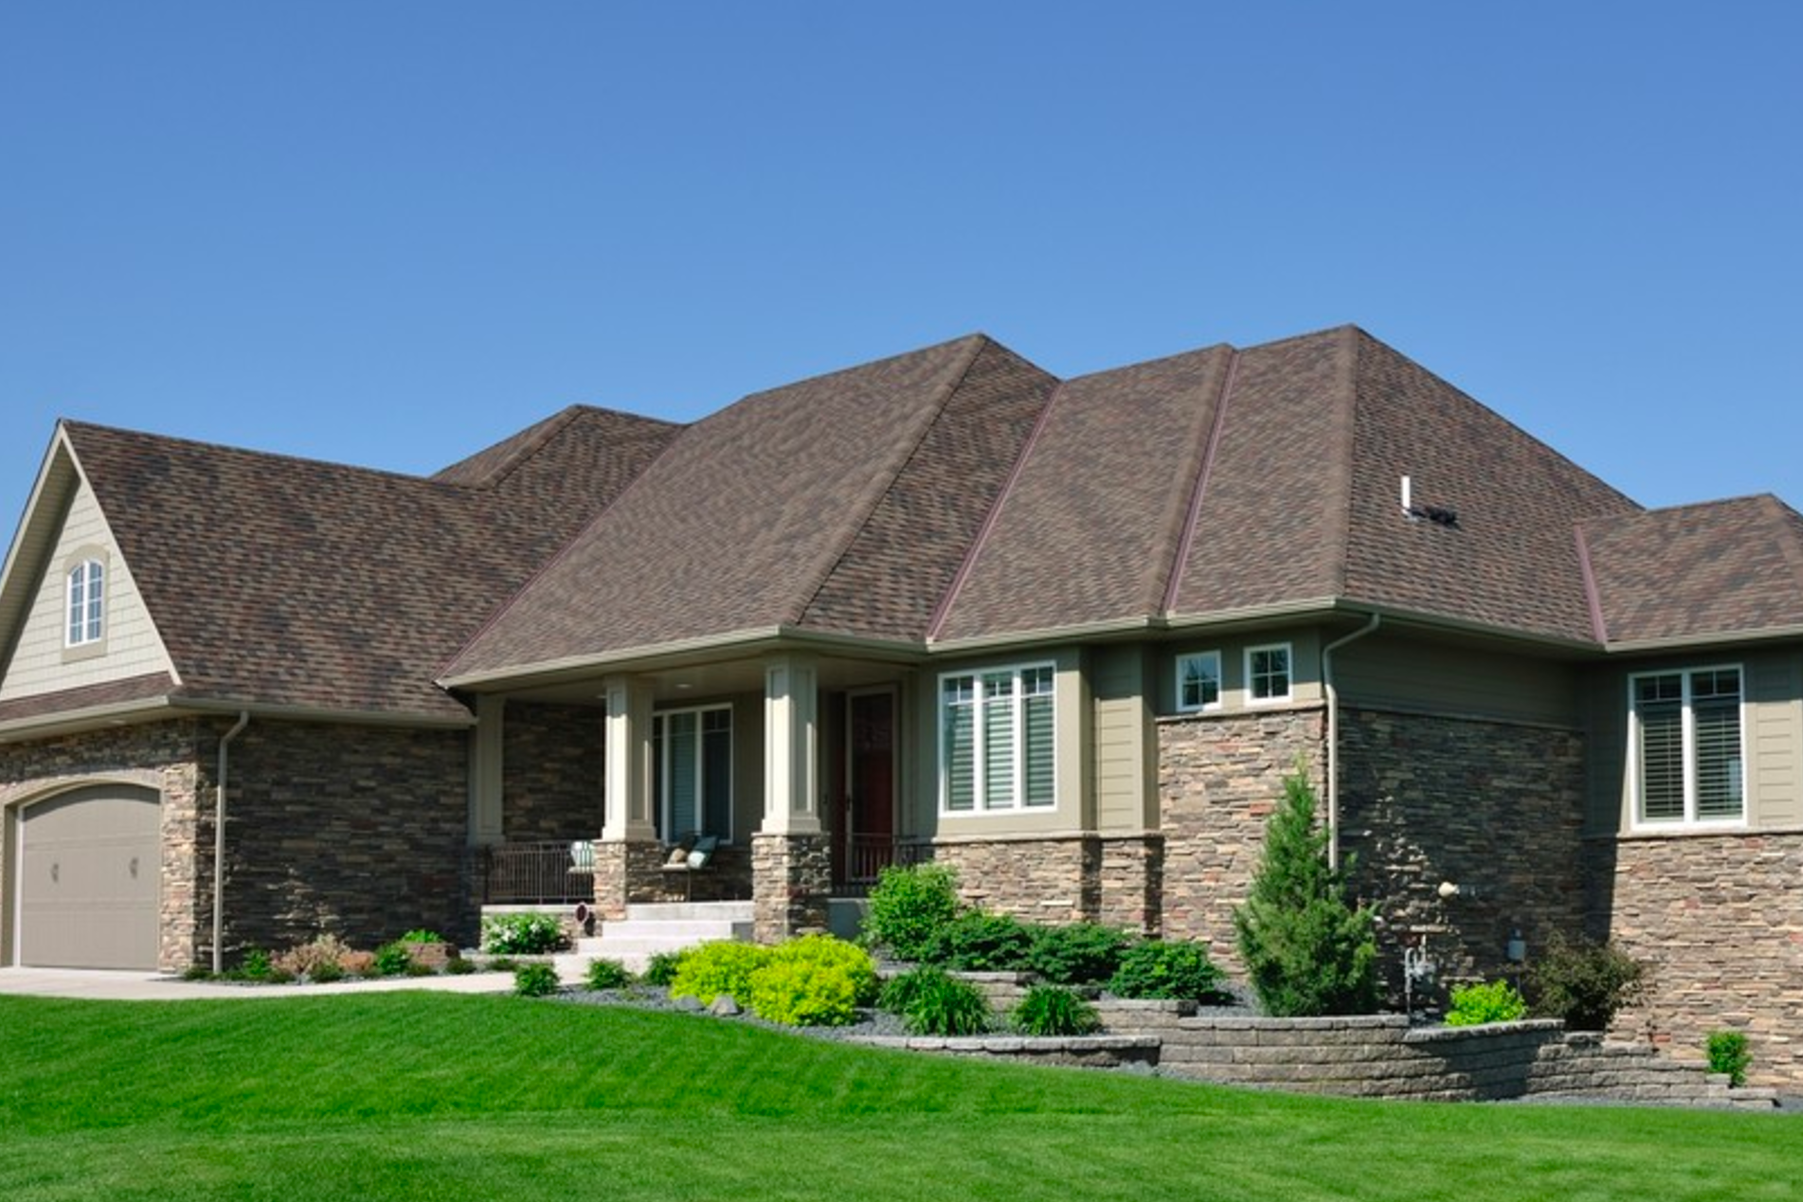 Roofing - Our team of professional will help you find the perfect style, color, and type of roof for your Texas home. Specializing in installation, repairs, re-roofing, replacement roofing, leak detection, shingles, and much more.